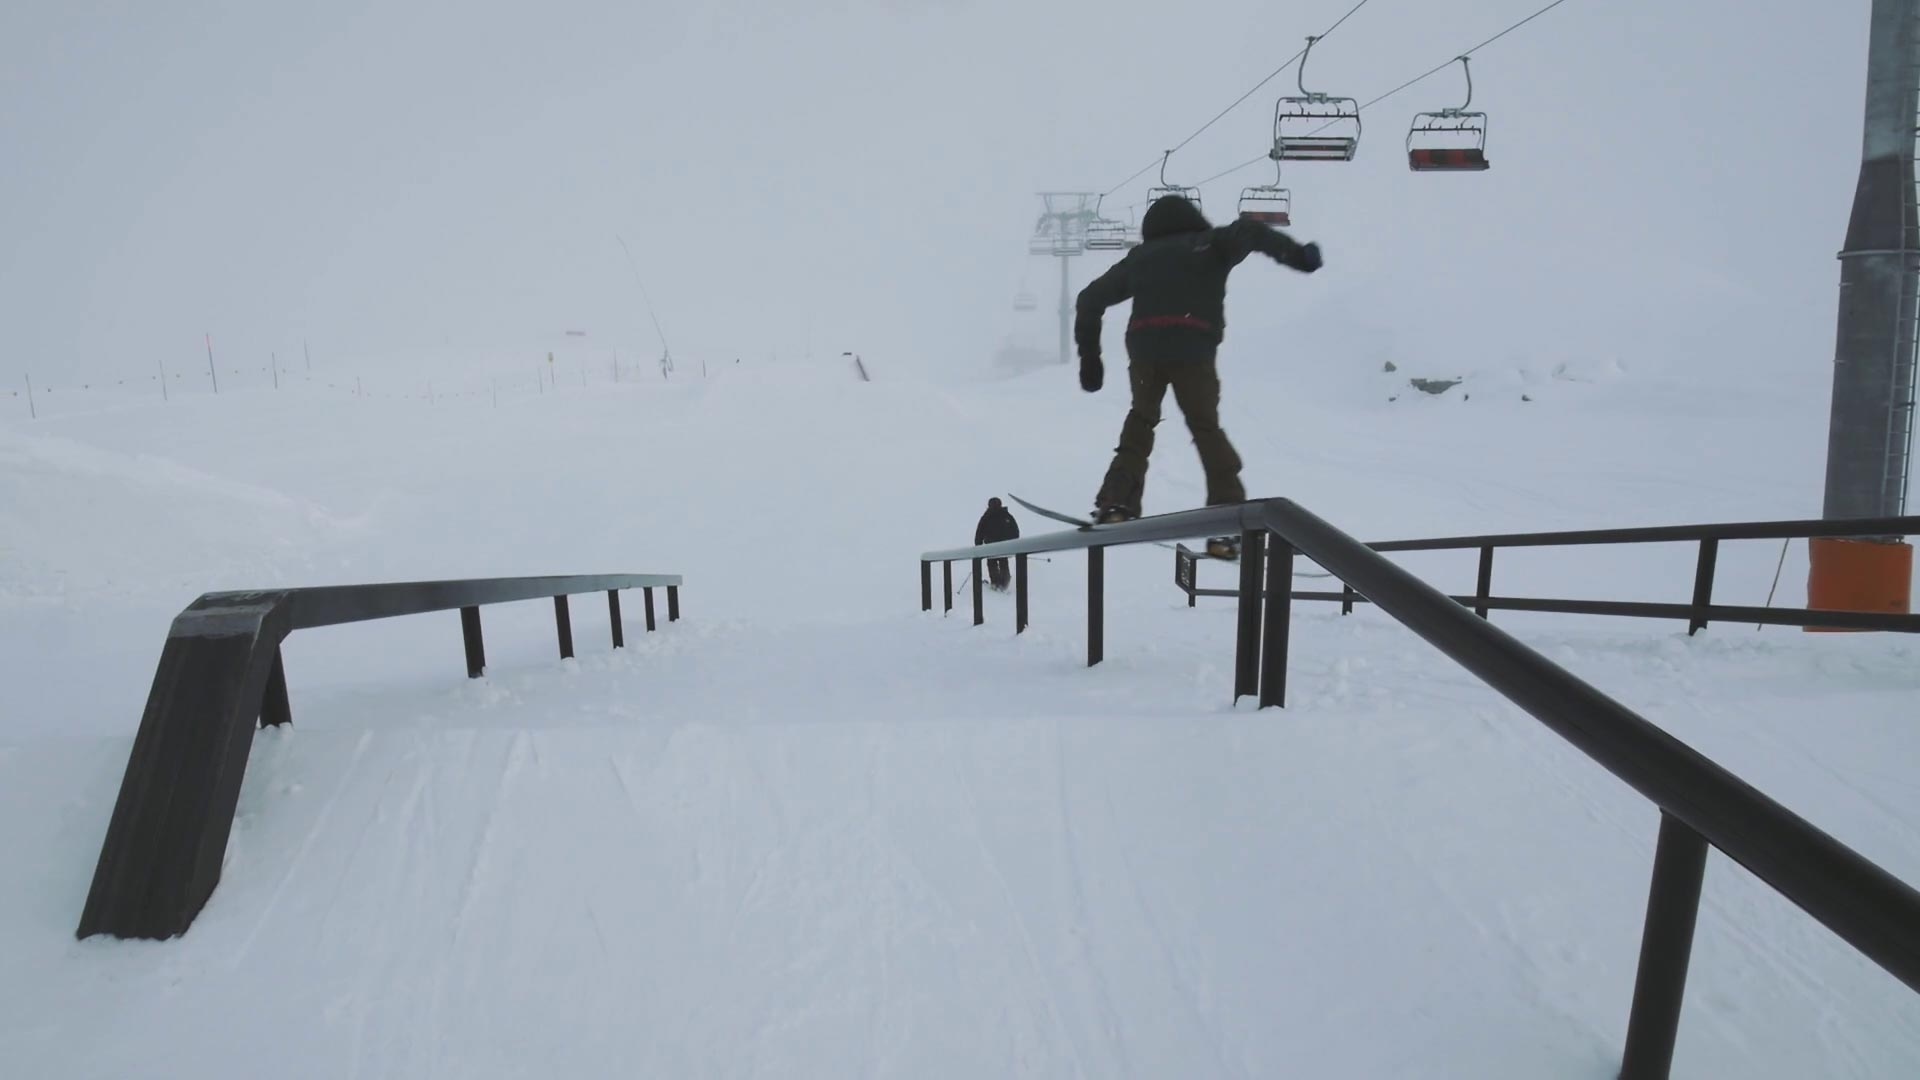 Corvatsch Park Opening Day